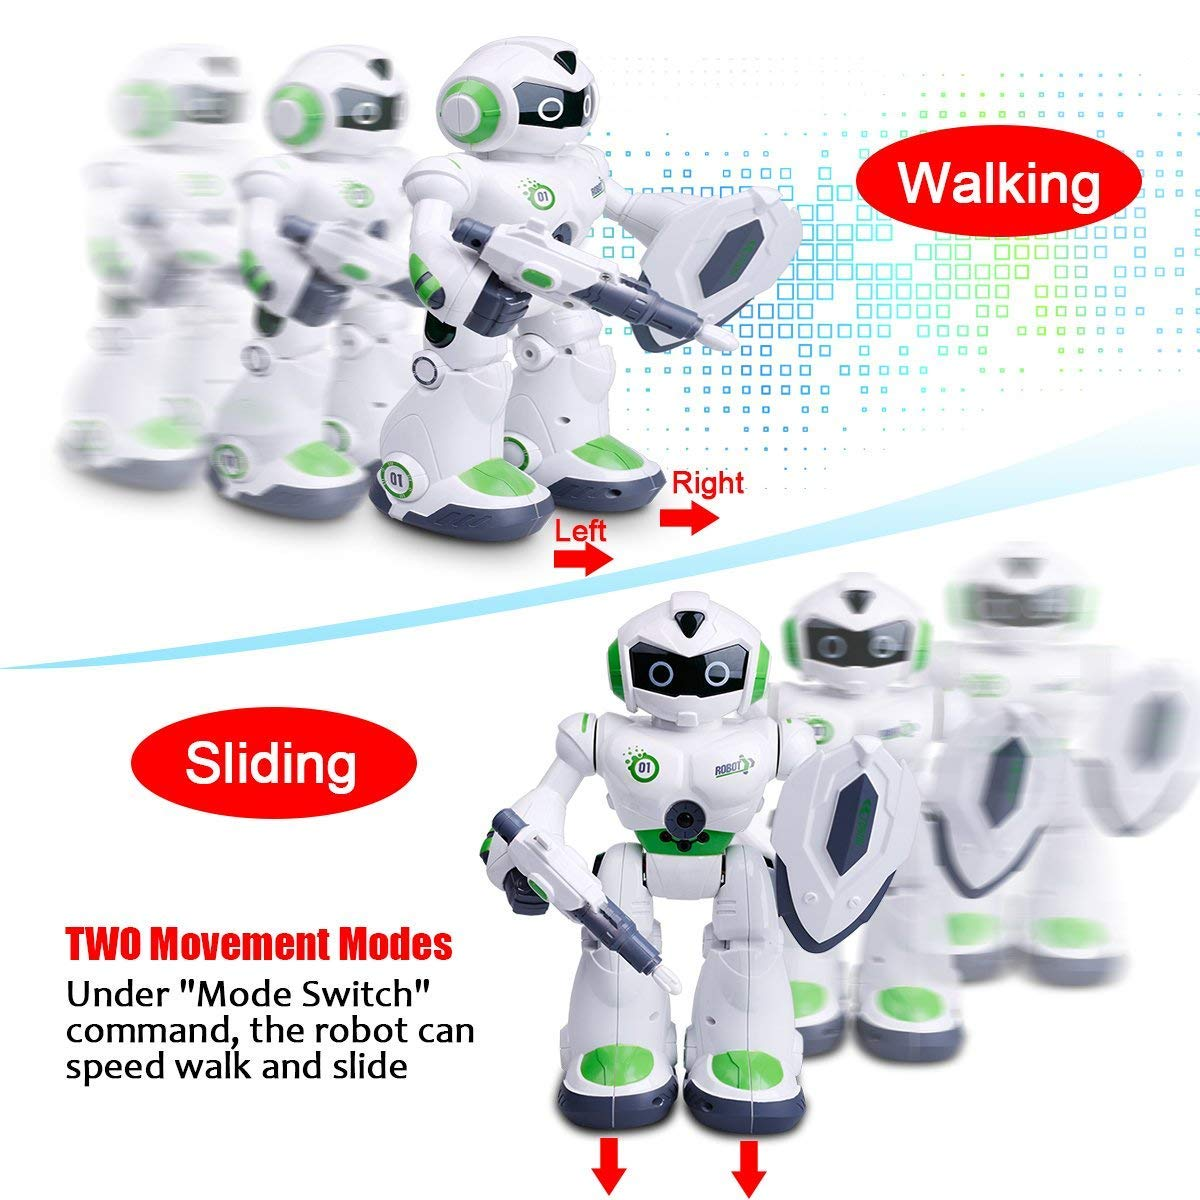 Remote Control Robot,Robot Toys,Smart Robotics for Kids with Gesture Sense, Interactive Walking Singing Dancing Speaking,with LED Light, Shoots Missiles, Talking, Walking, Singing, Educational Toys by Locke Teddy (Image #5)